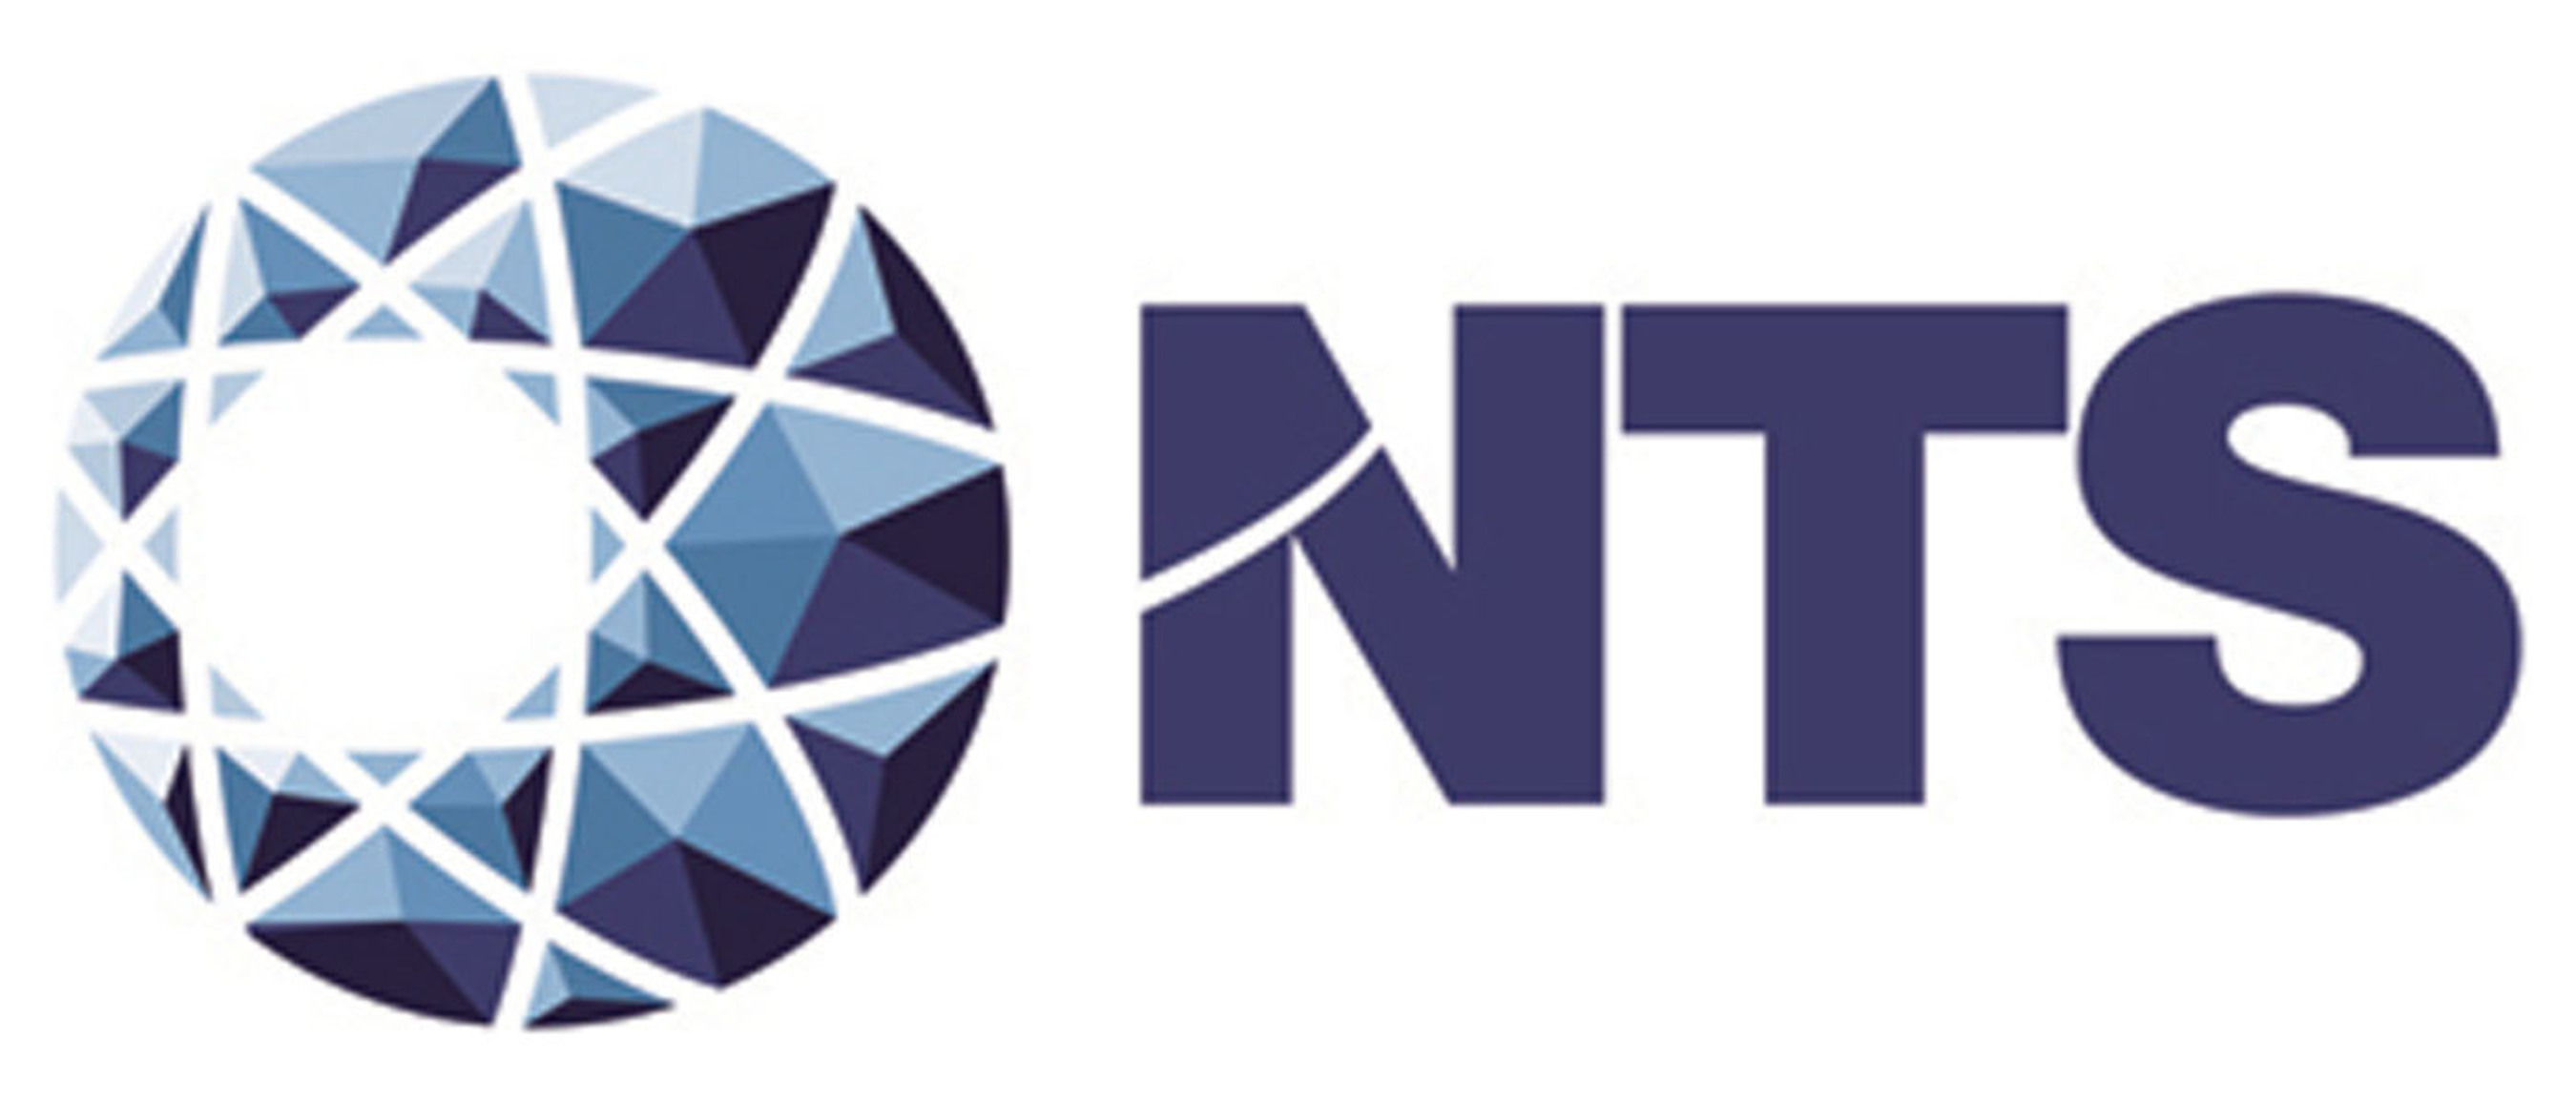 National Technical Systems Announces the Acquisition of National Quality Assurance